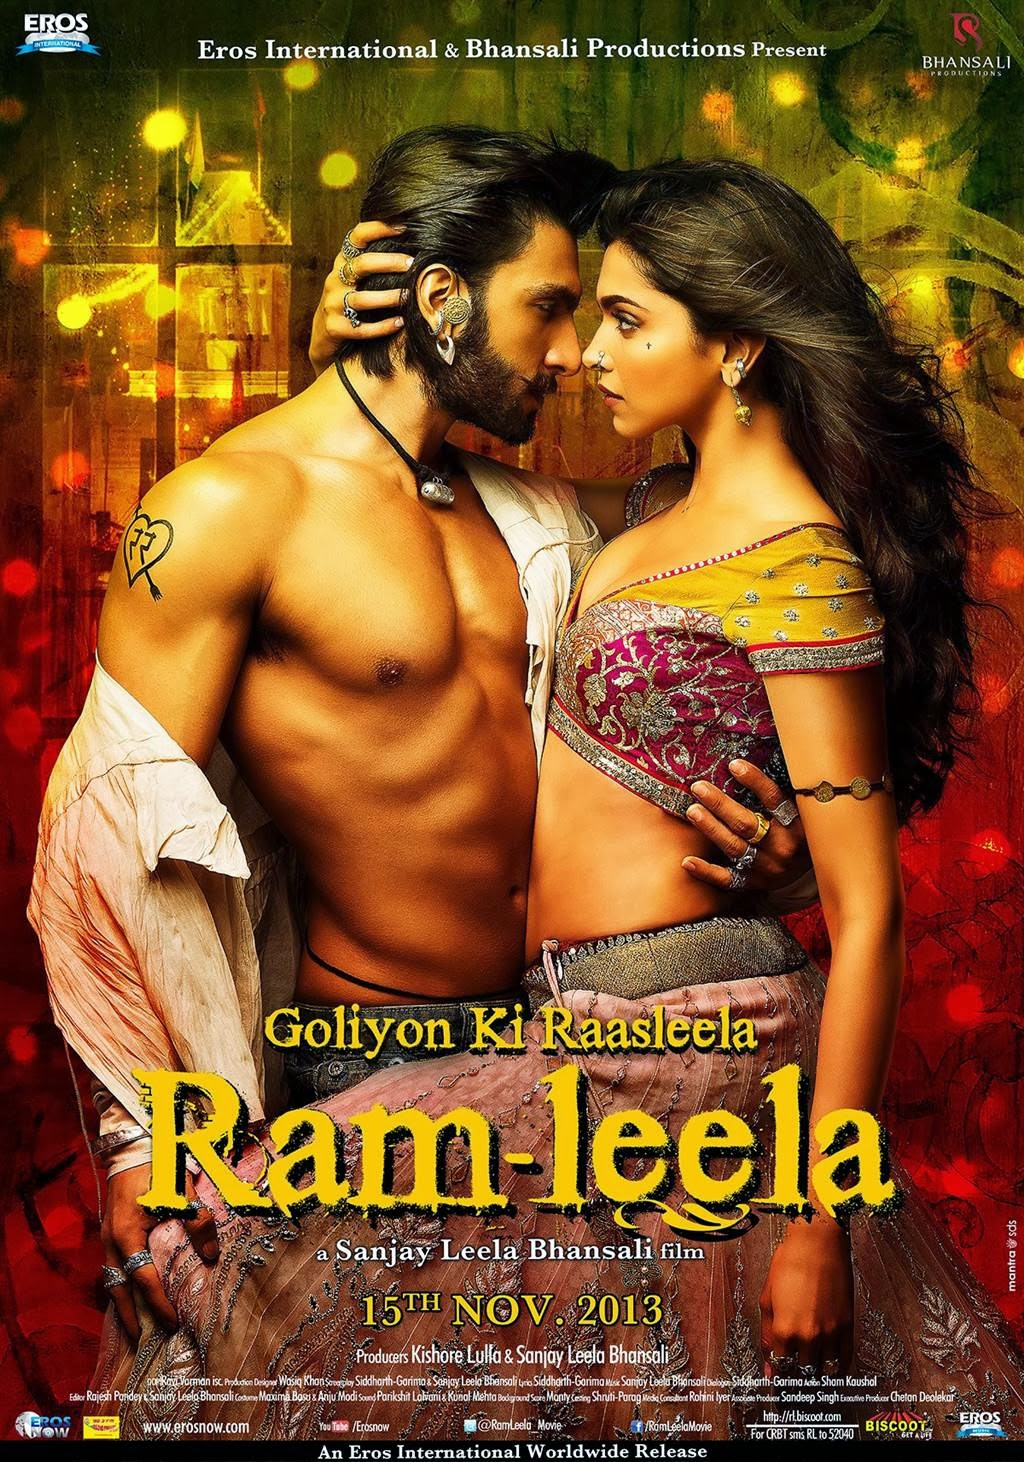 mahogany movie couples images ram & leela hd wallpaper and